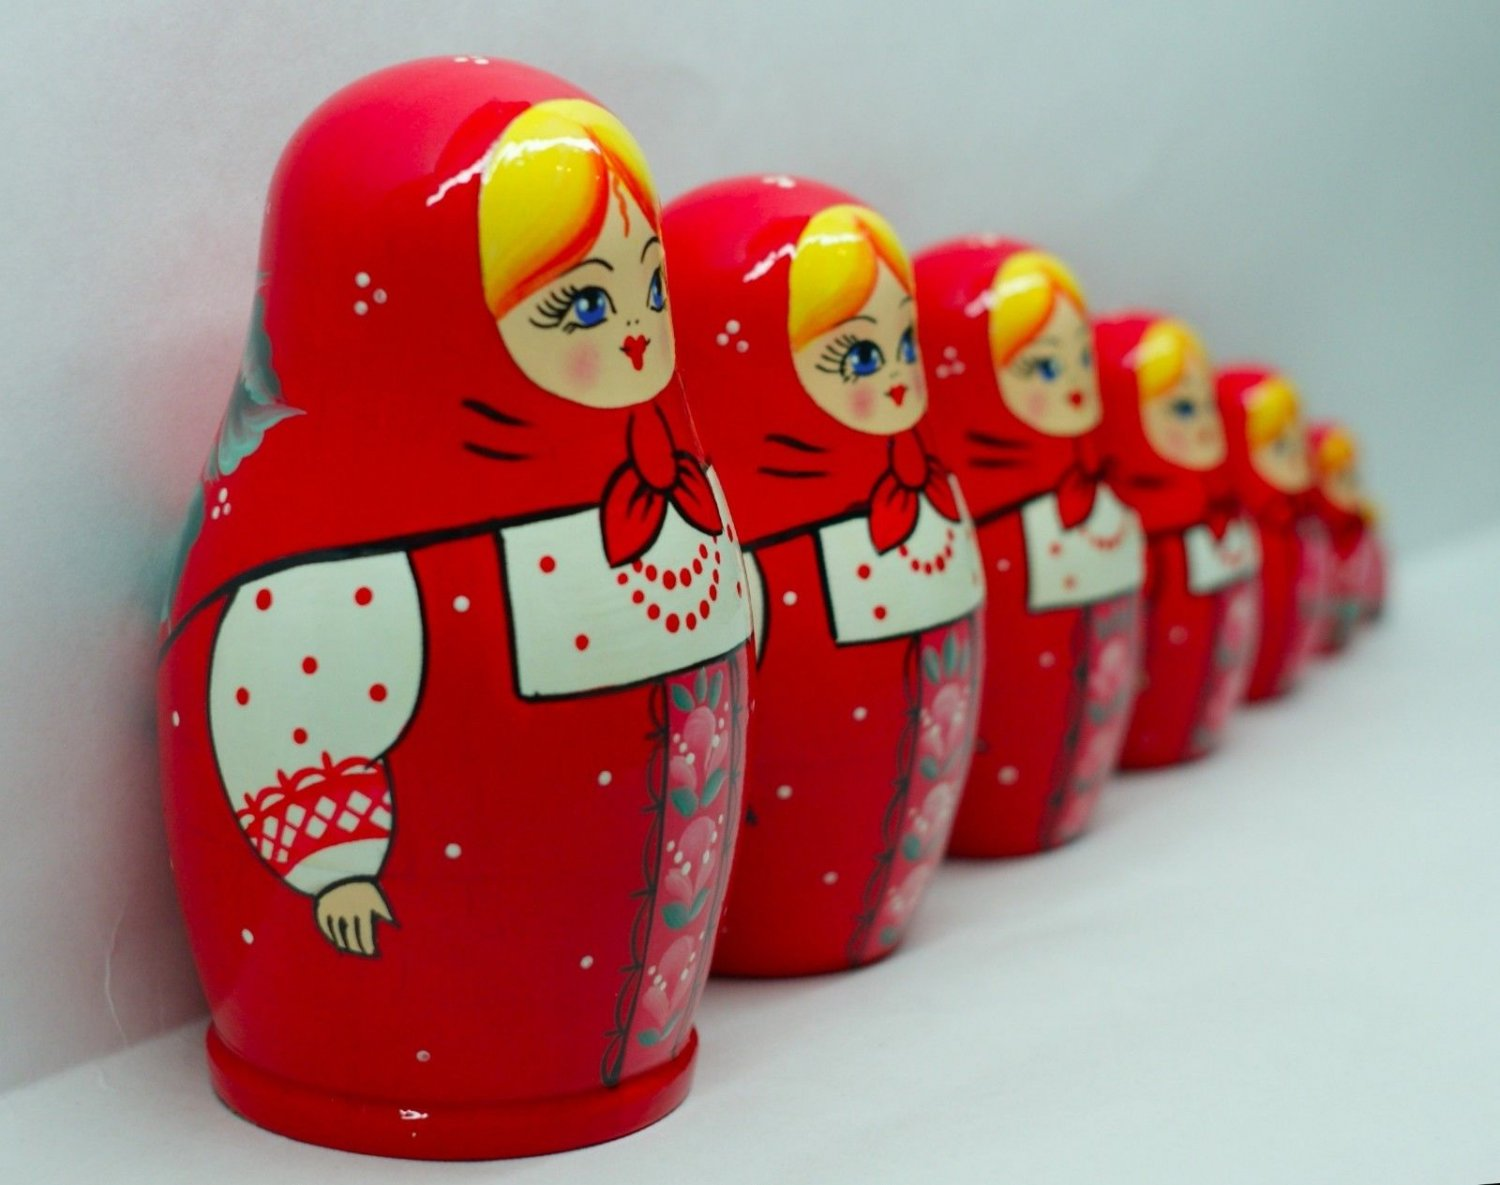 Red Matryoshka Babushka Russian Wooden Stacking Nesting Doll Souvenirs Toys for Kids 7pc